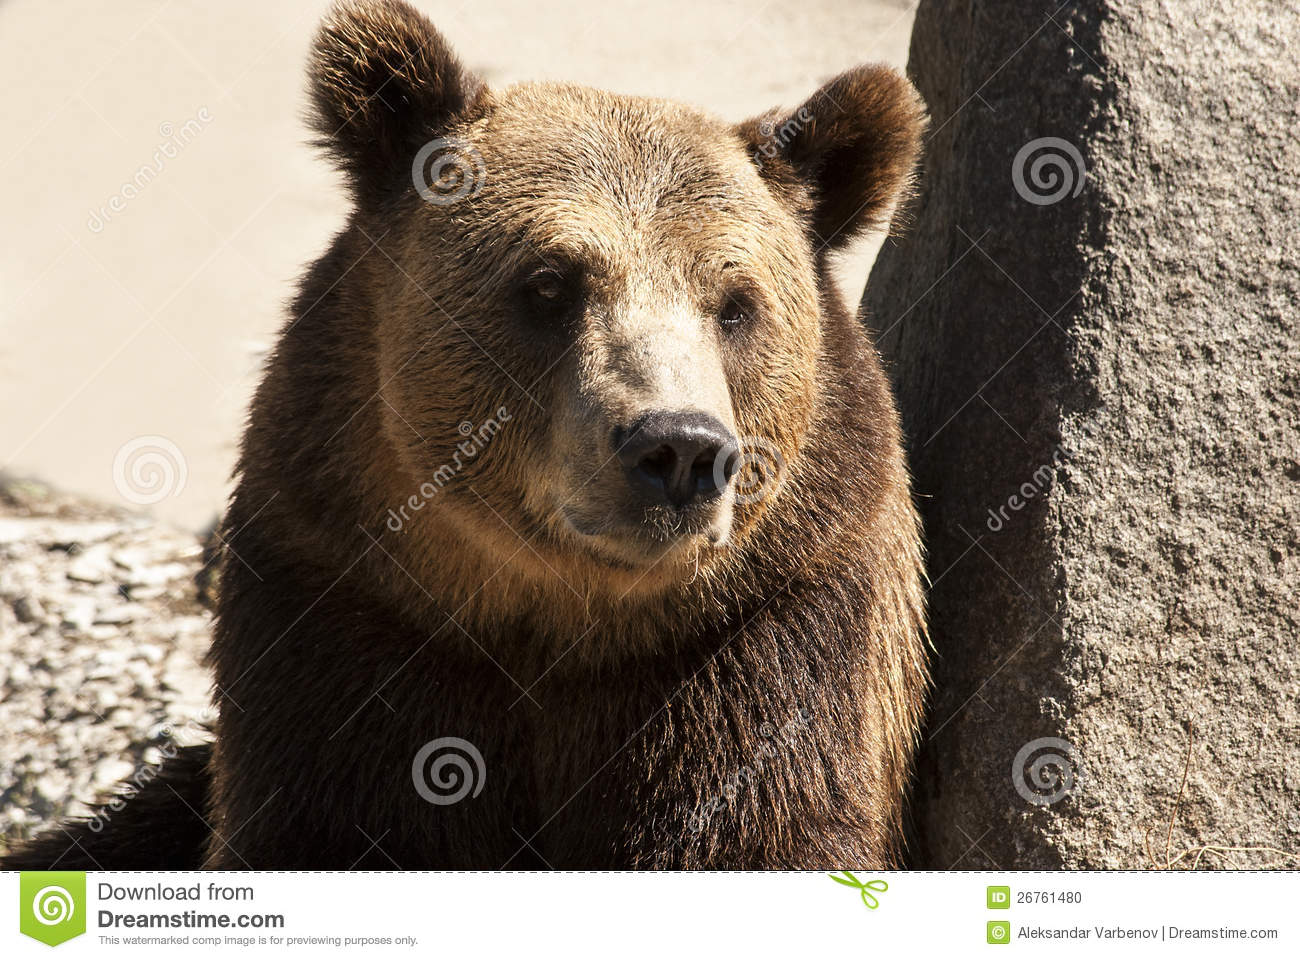 Grizzly bear face side - photo#13